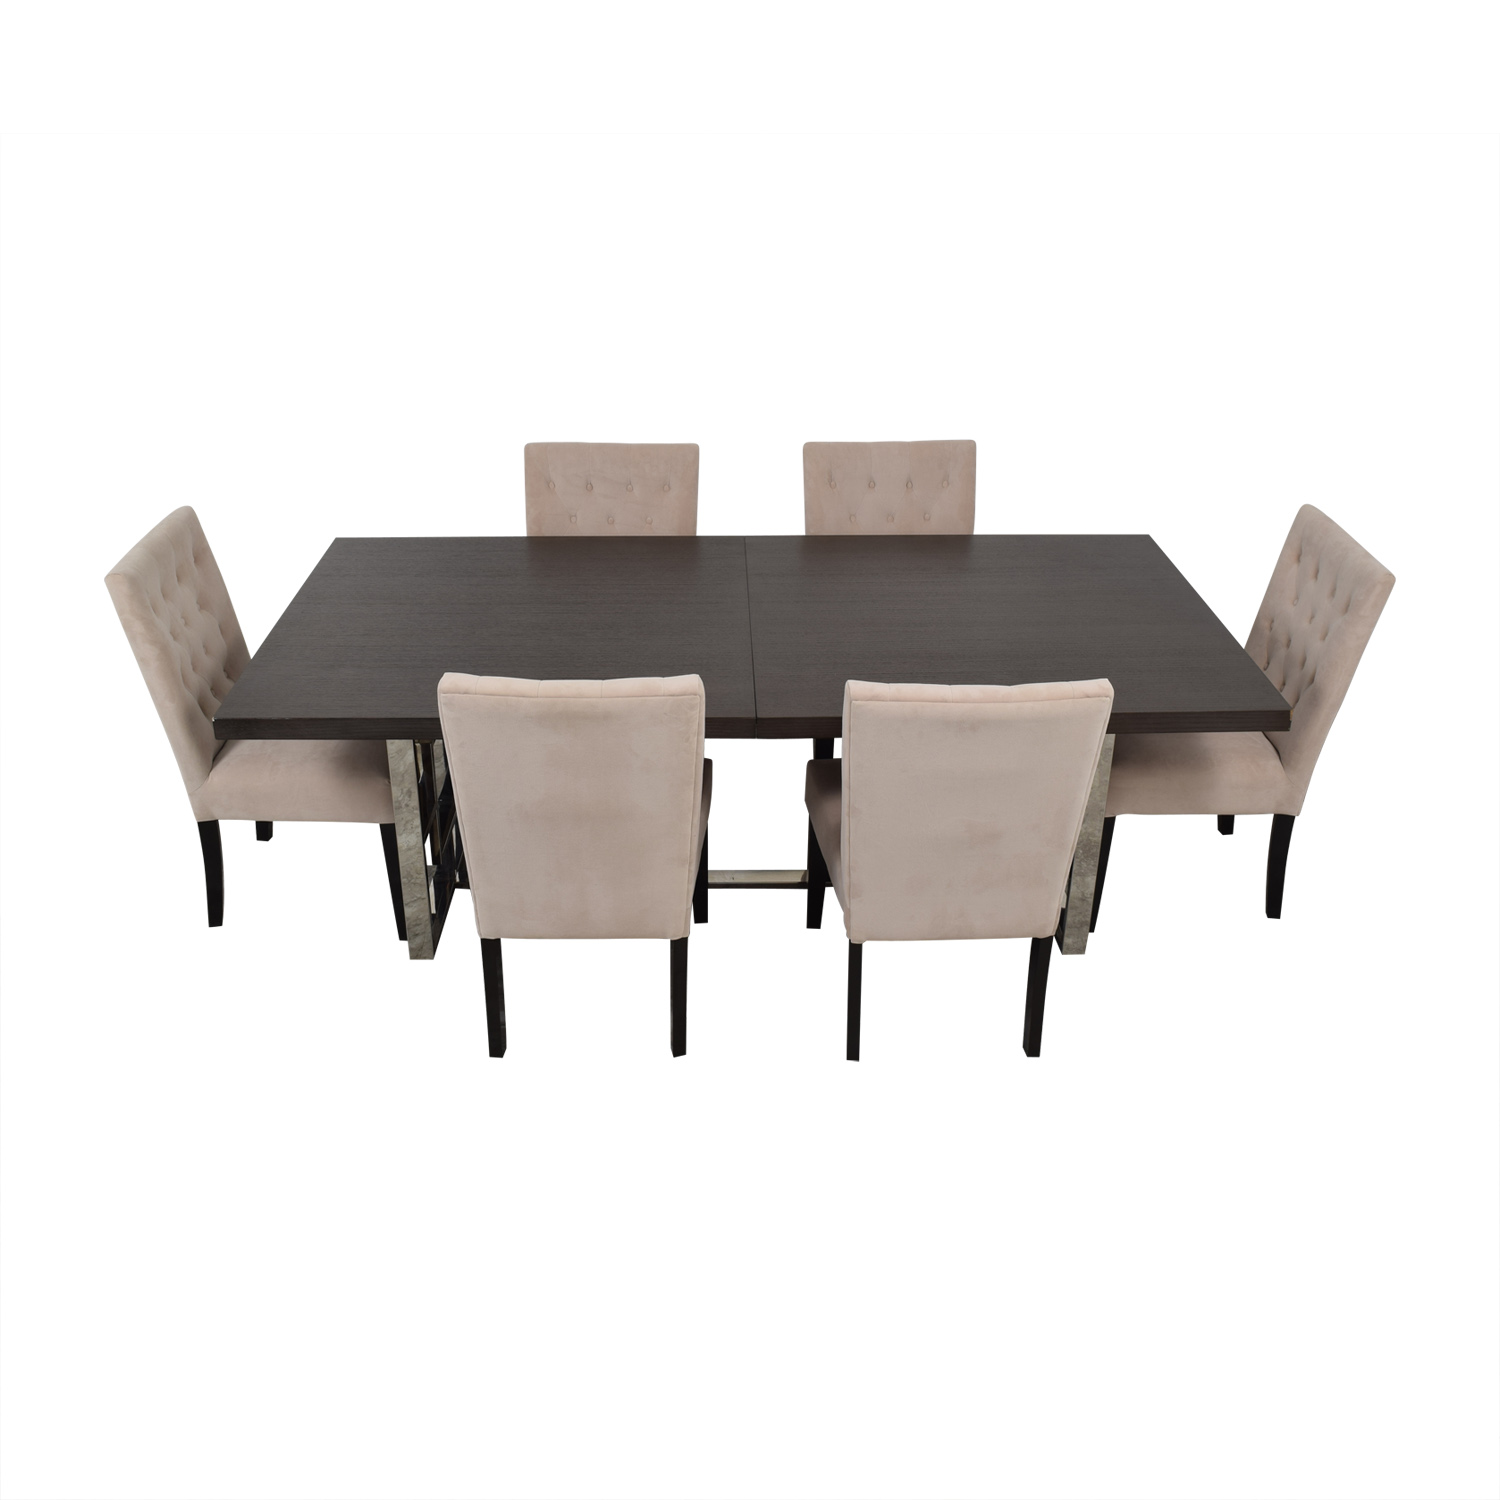 Z Gallerie Z Gallerie Rylan Extentable Dining Set with Beige Tufted Chairs coupon